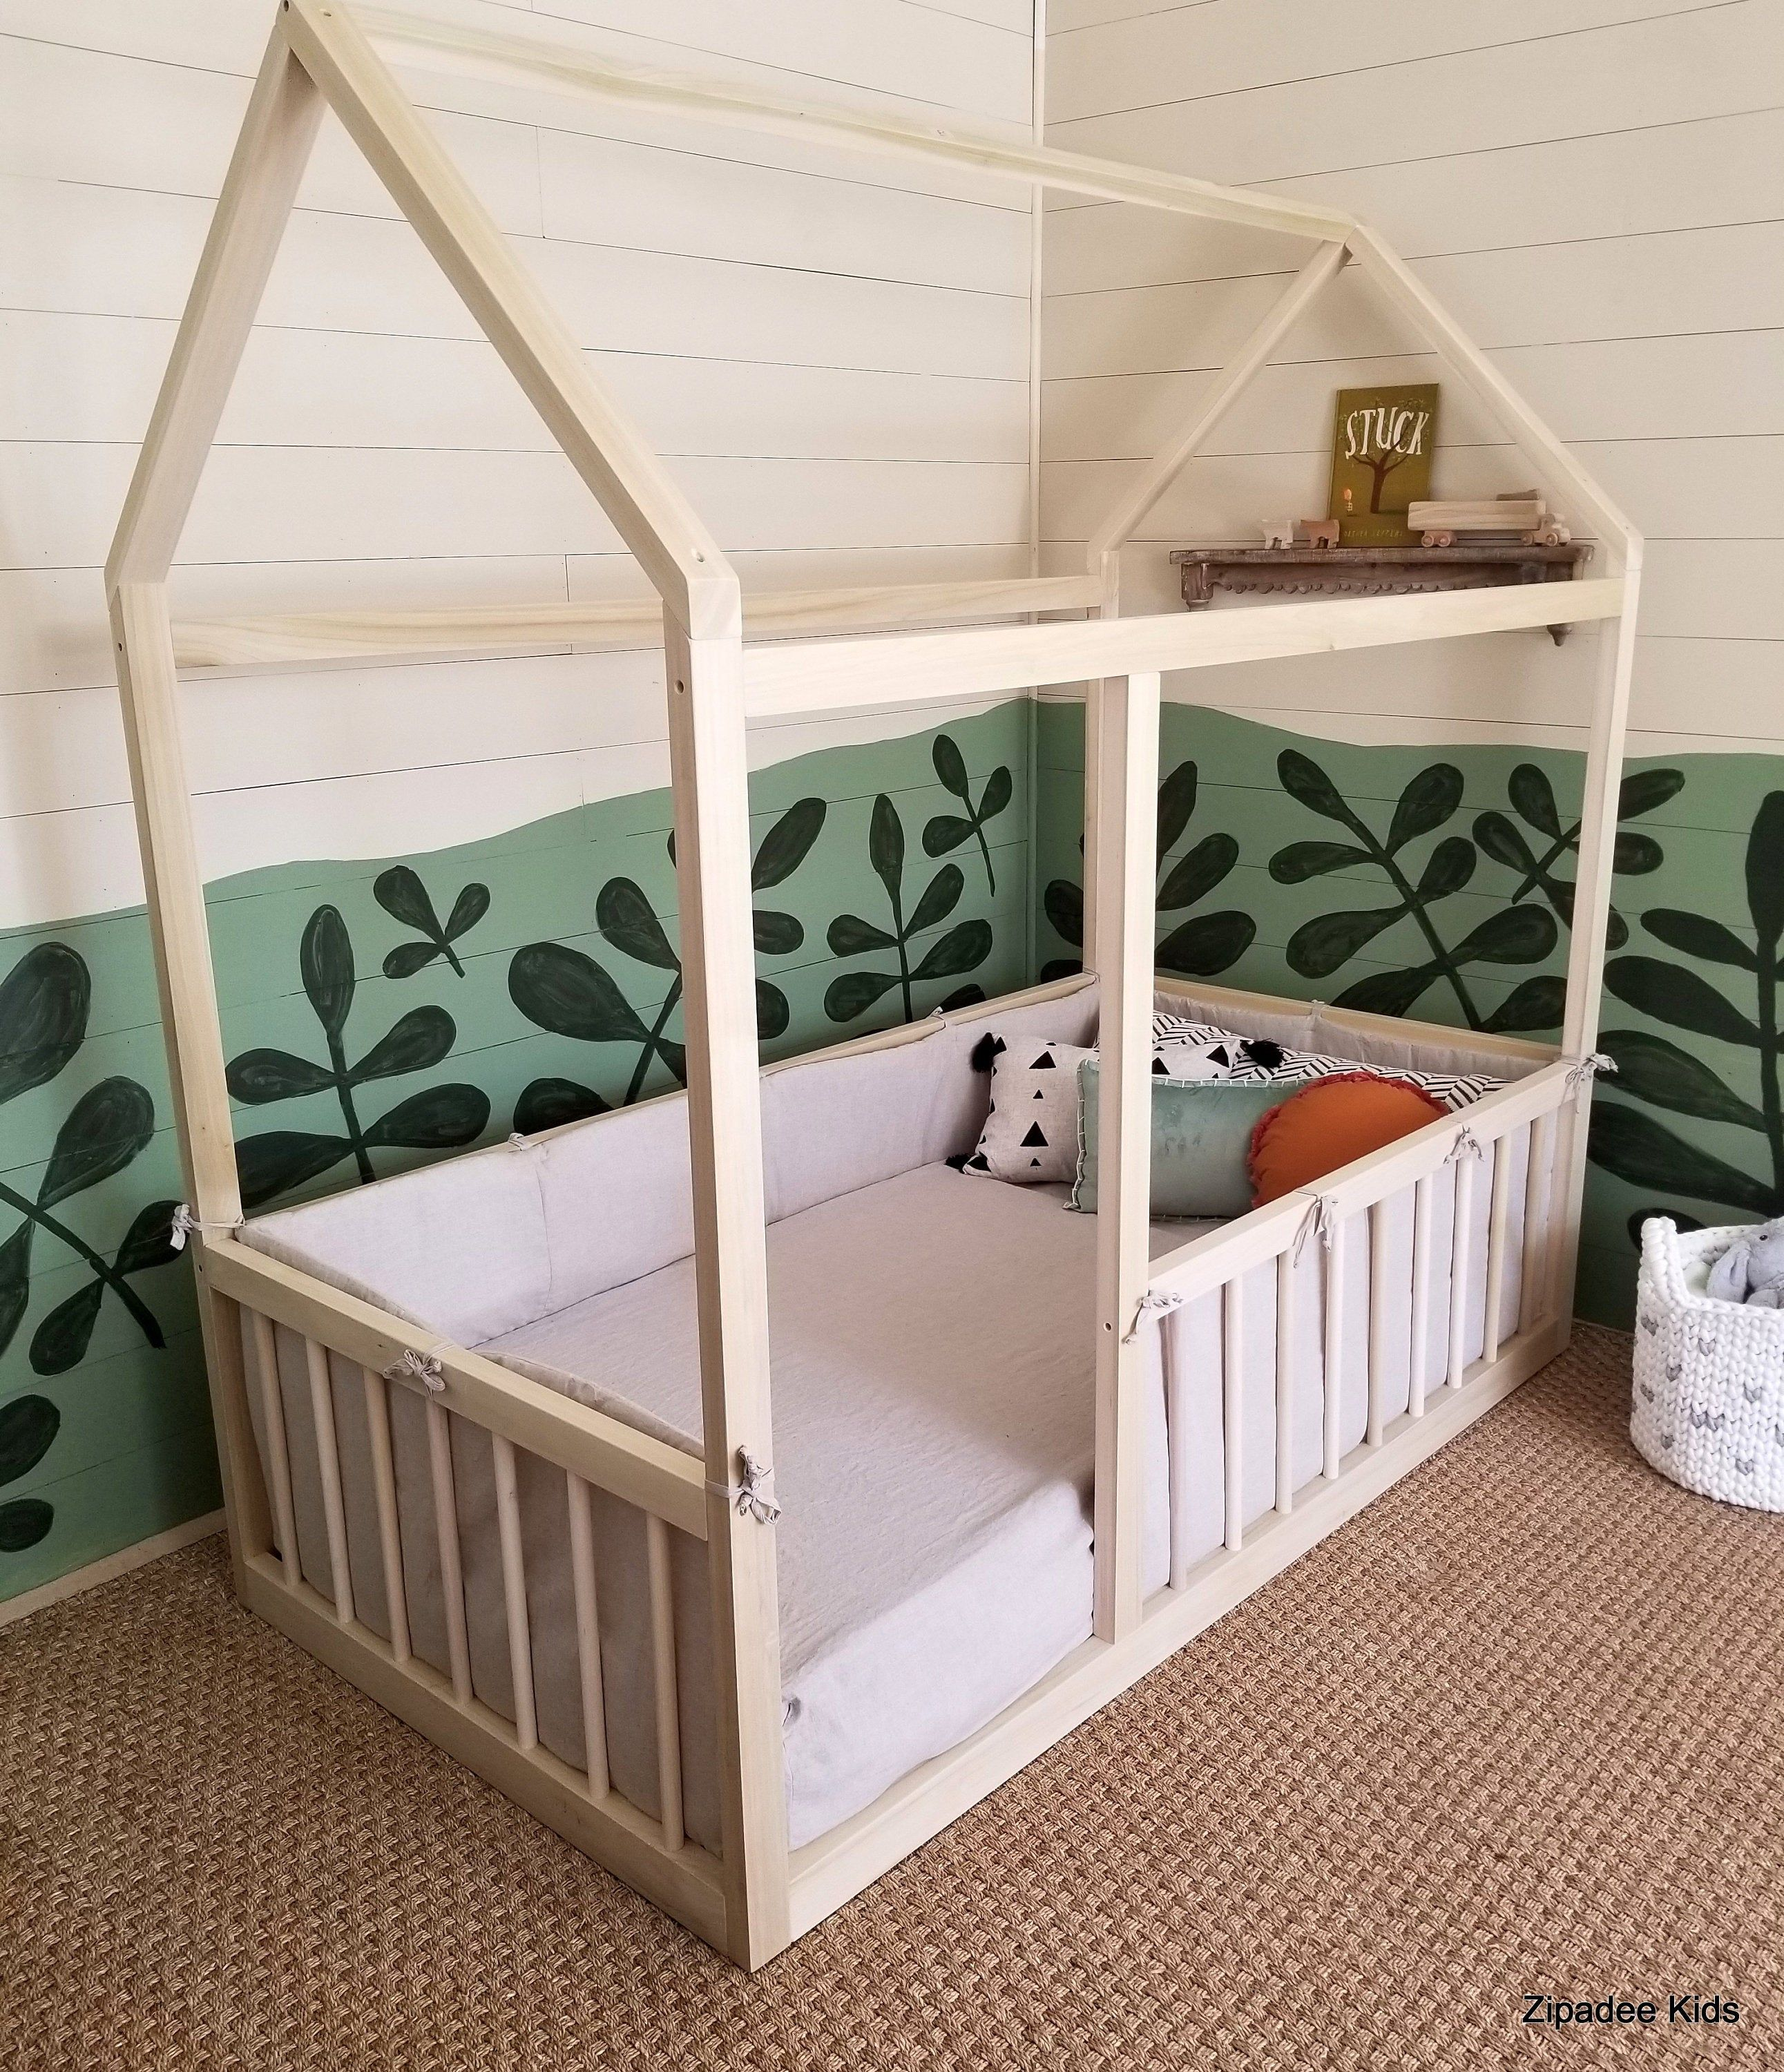 Hardwood House Bed Montessori Twin Full Bed With One Two Etsy House Frame Bed Bed Frame Mattress Floor Bed